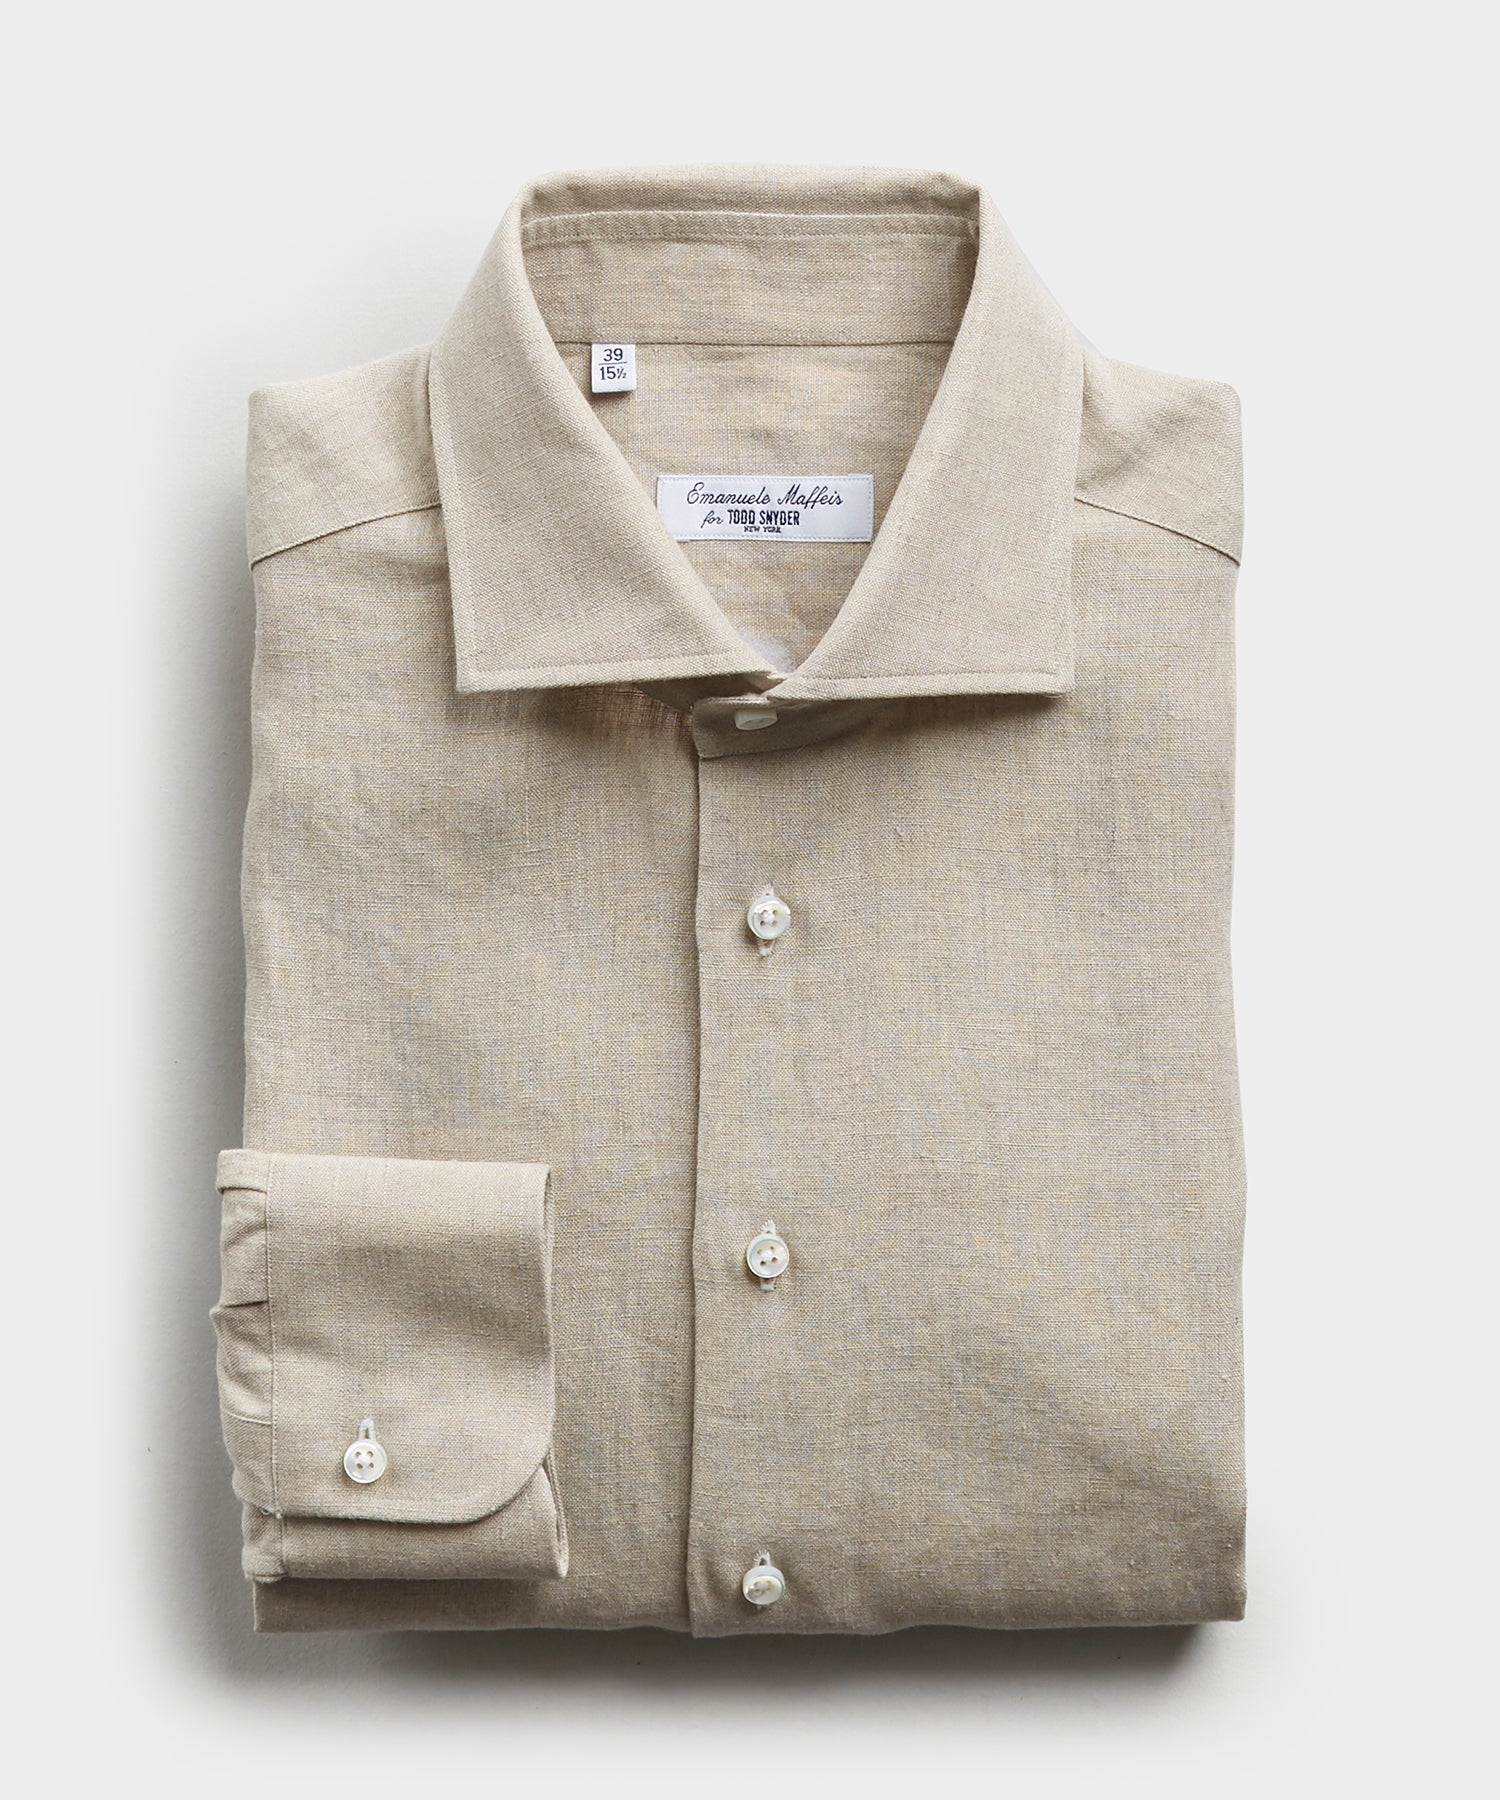 Camiceria E. Maffeis Organic Solid Cotton/Linen Dress Shirt in Beige